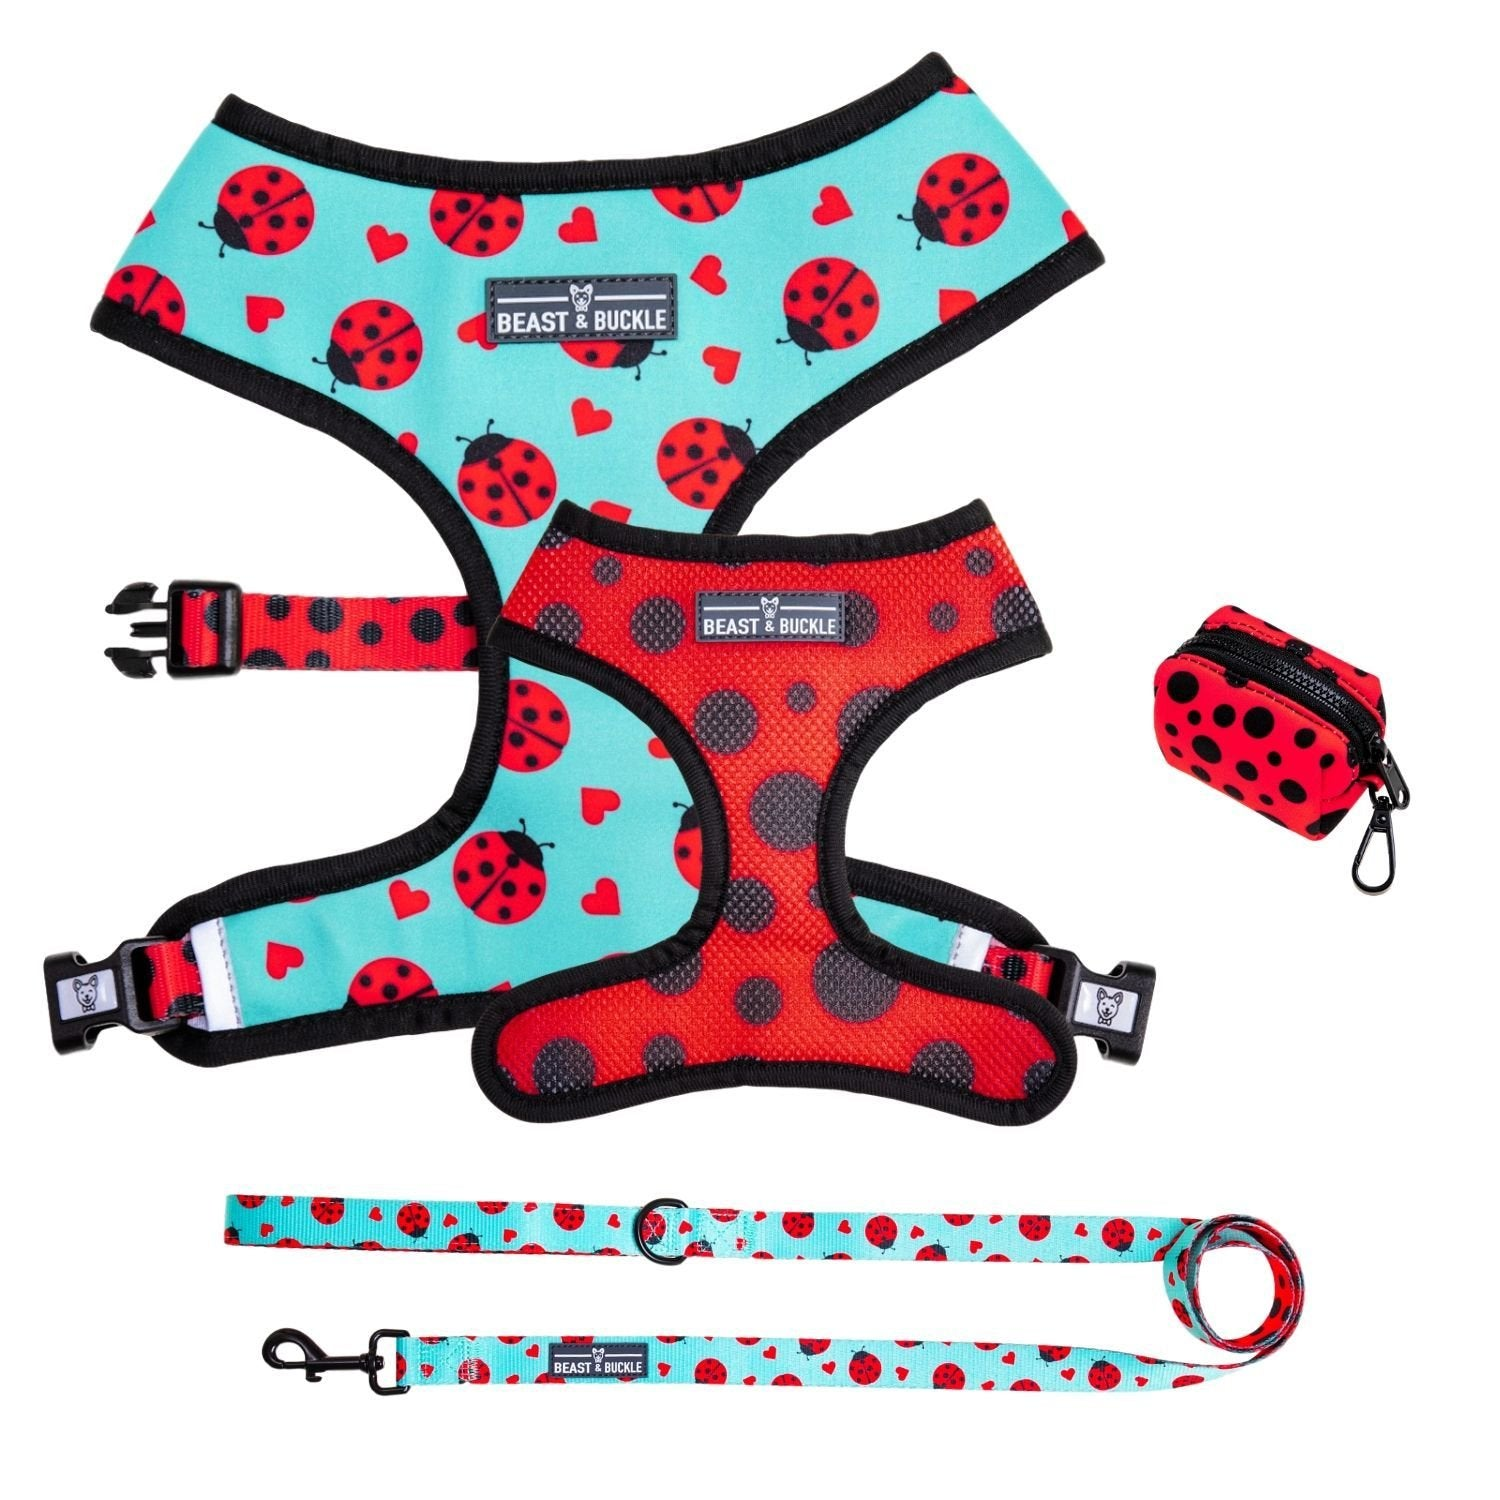 Ladybug Walking Bundle - Beast & Buckle